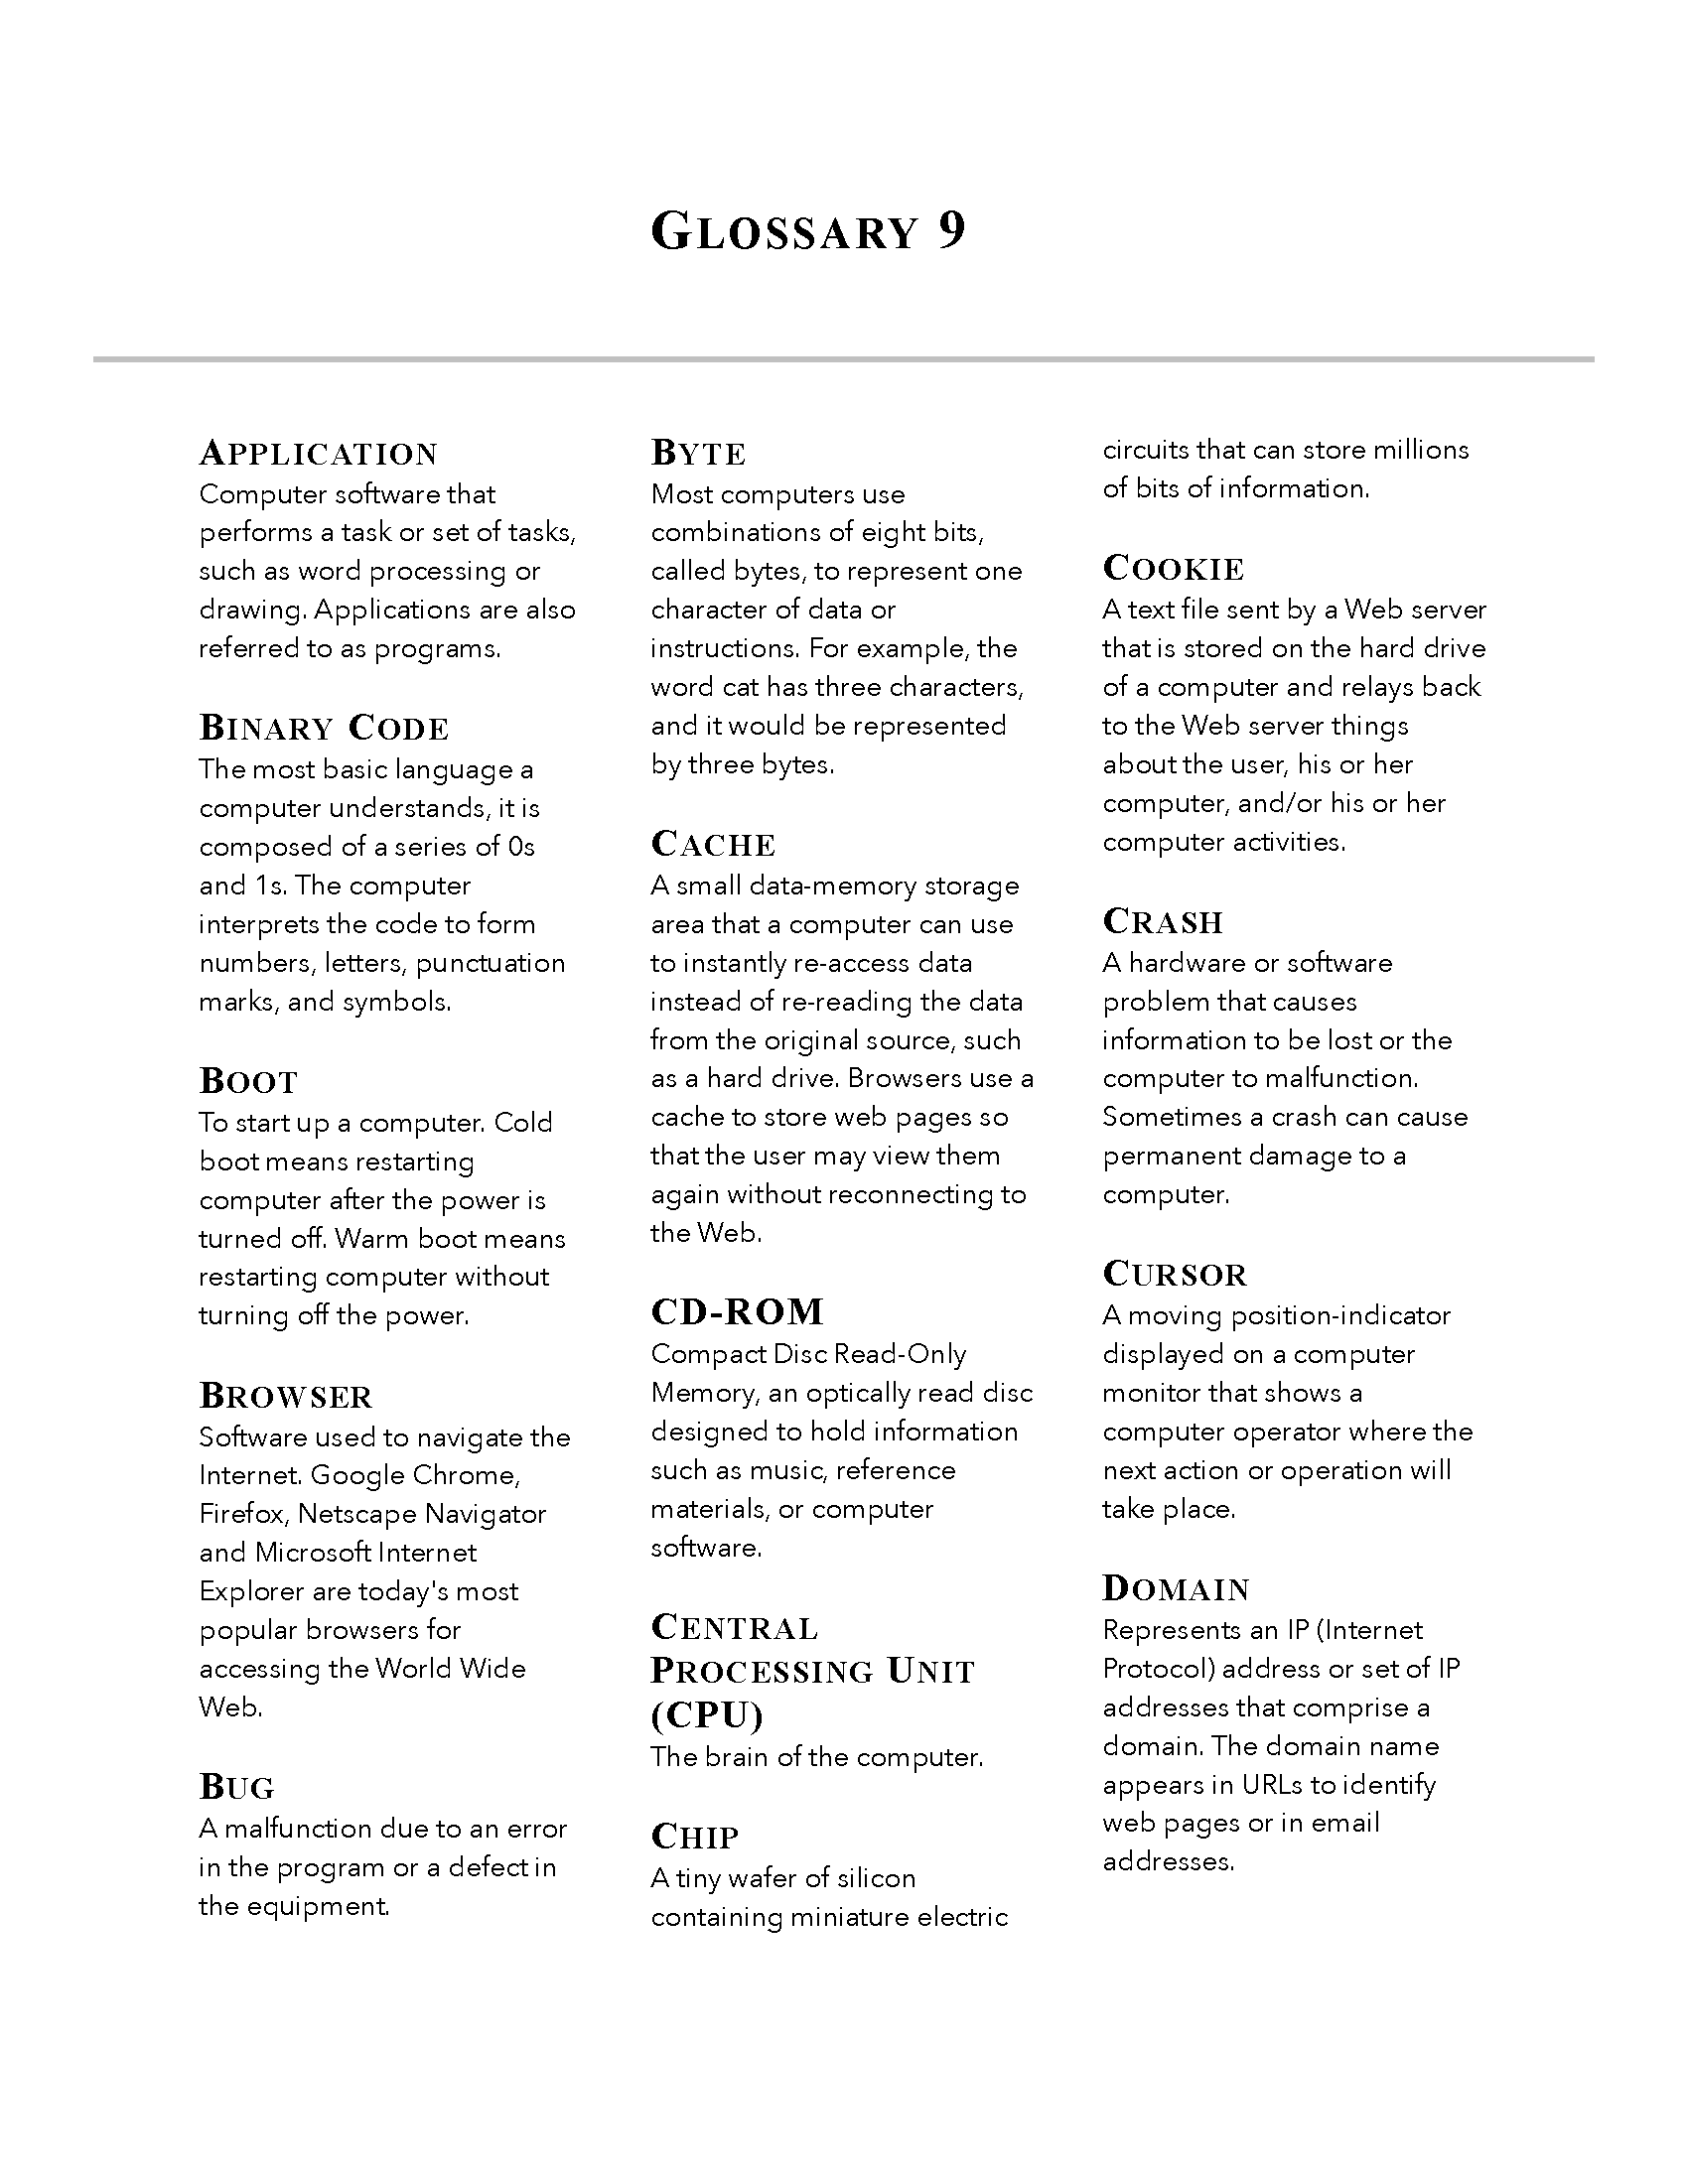 Glossary Template Page 09